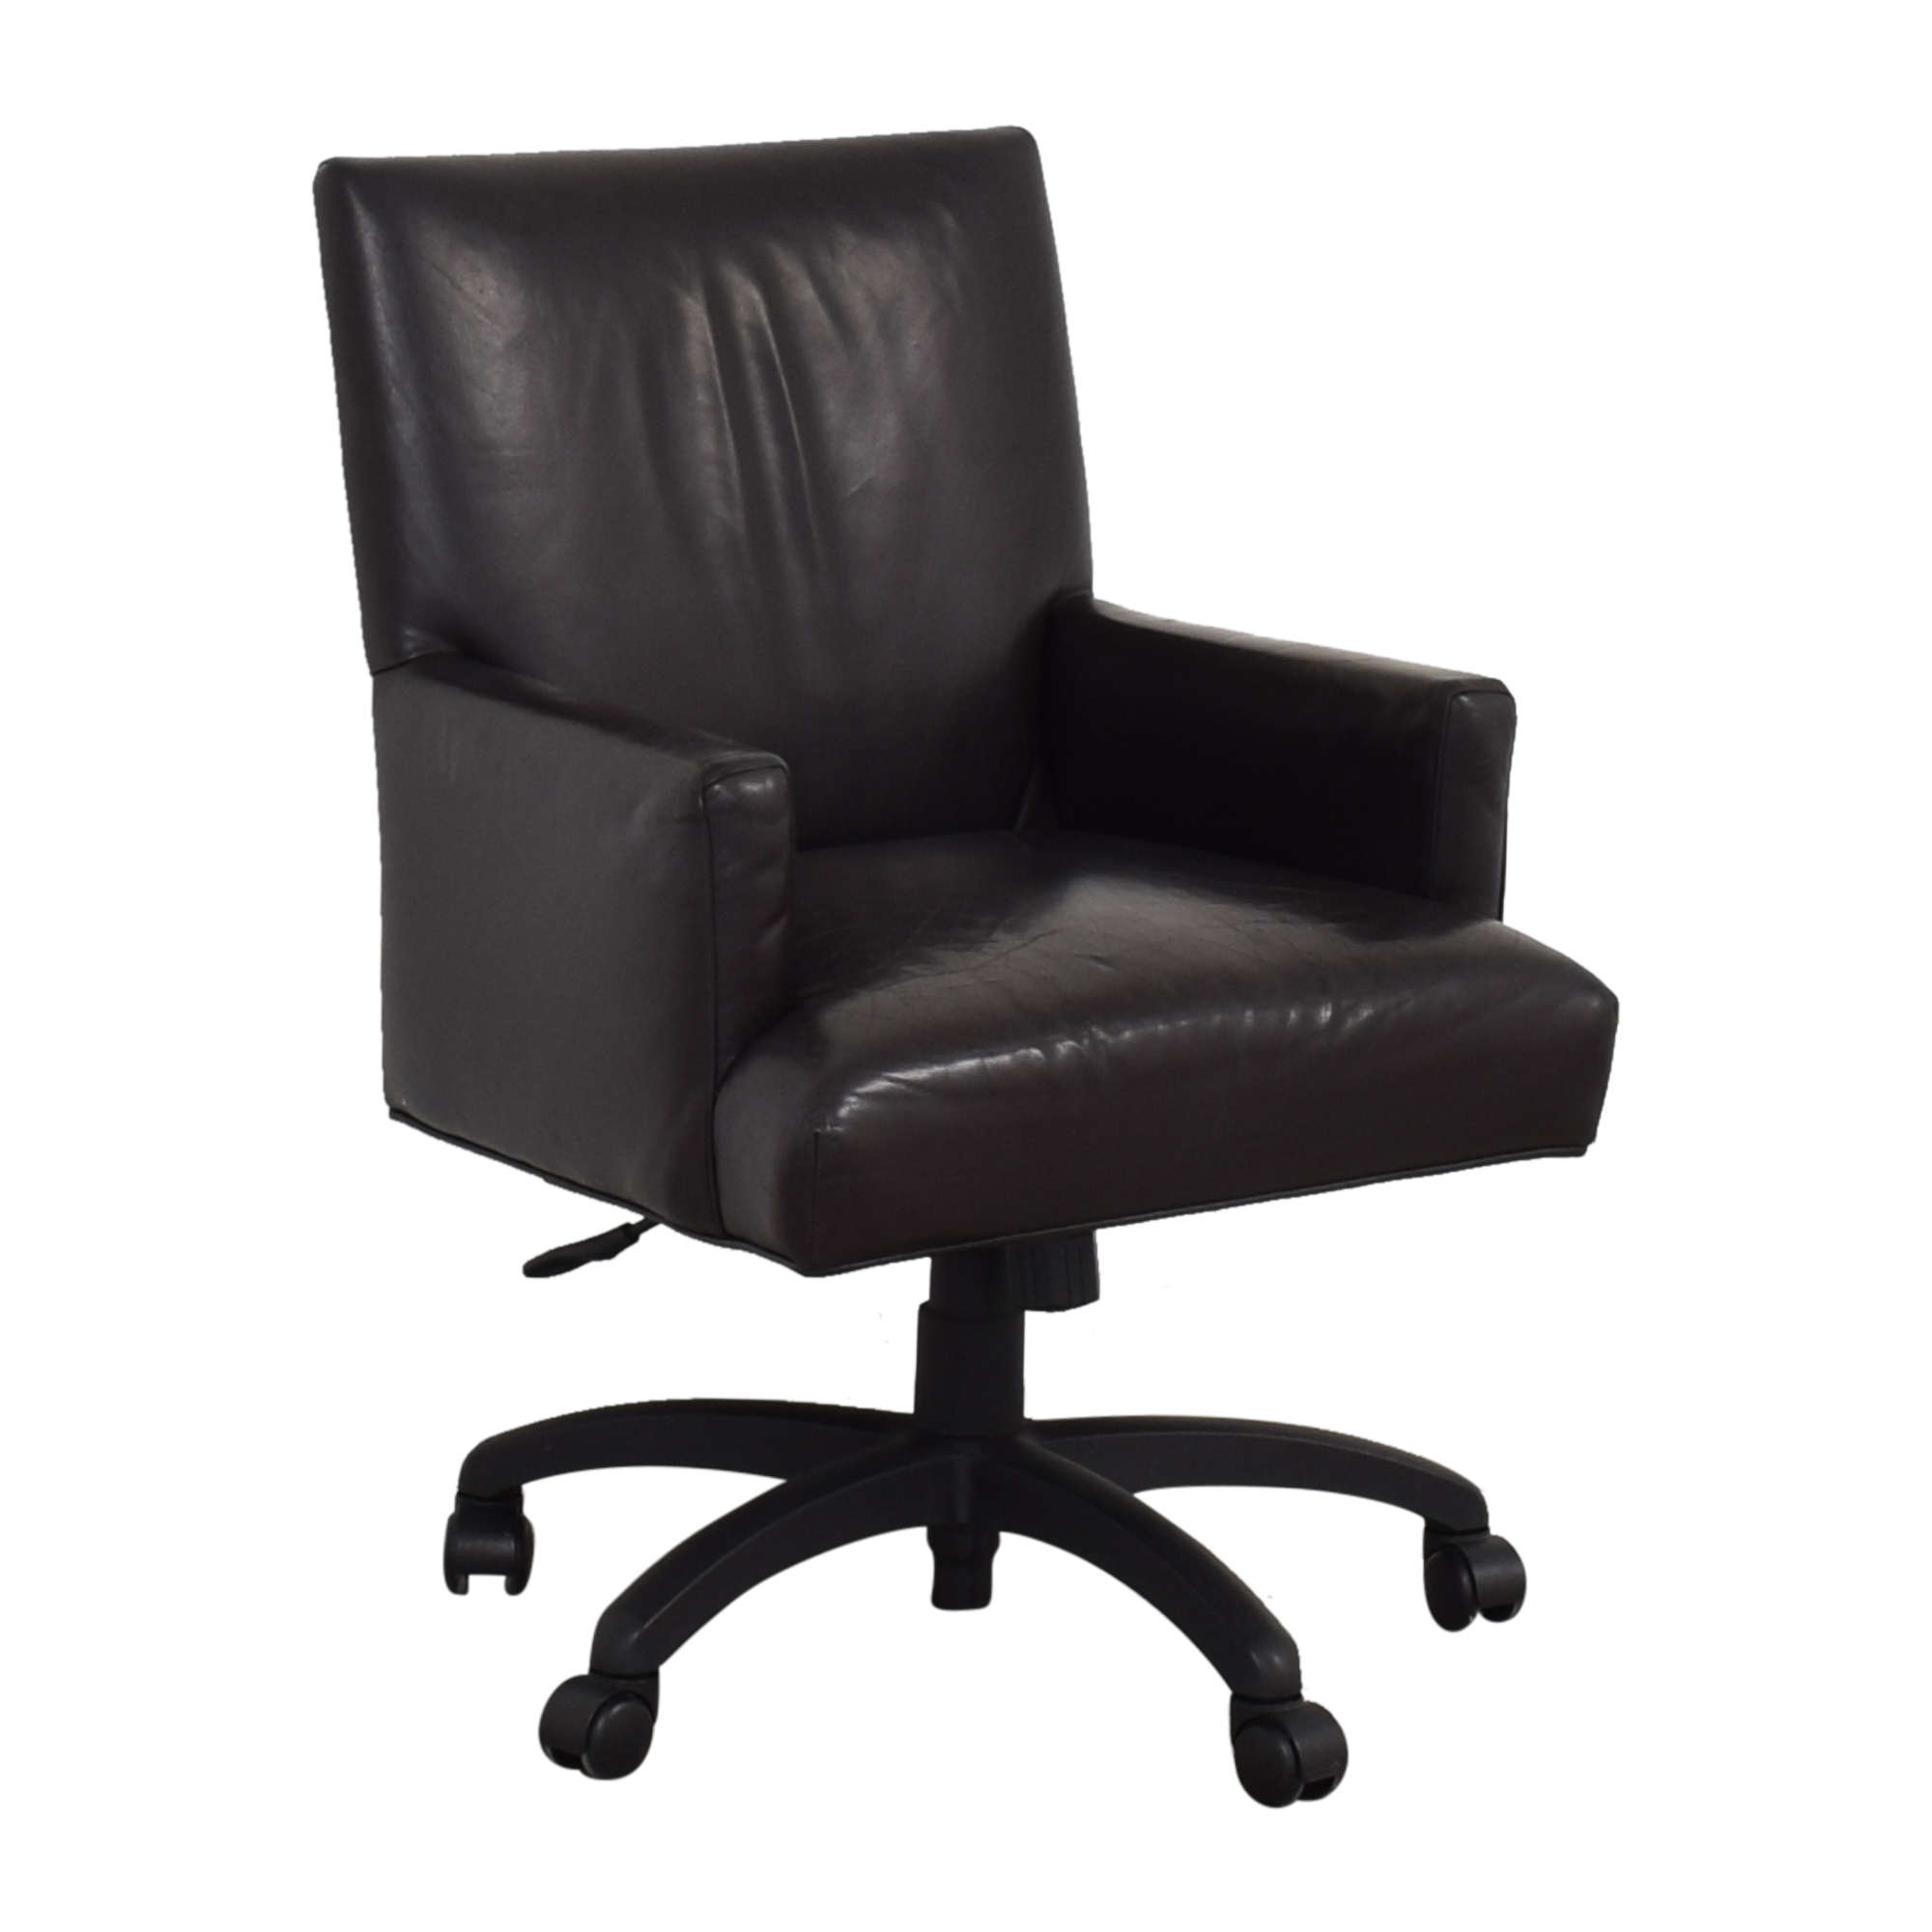 Crate & Barrel Crate & Barrel Office Chair for sale